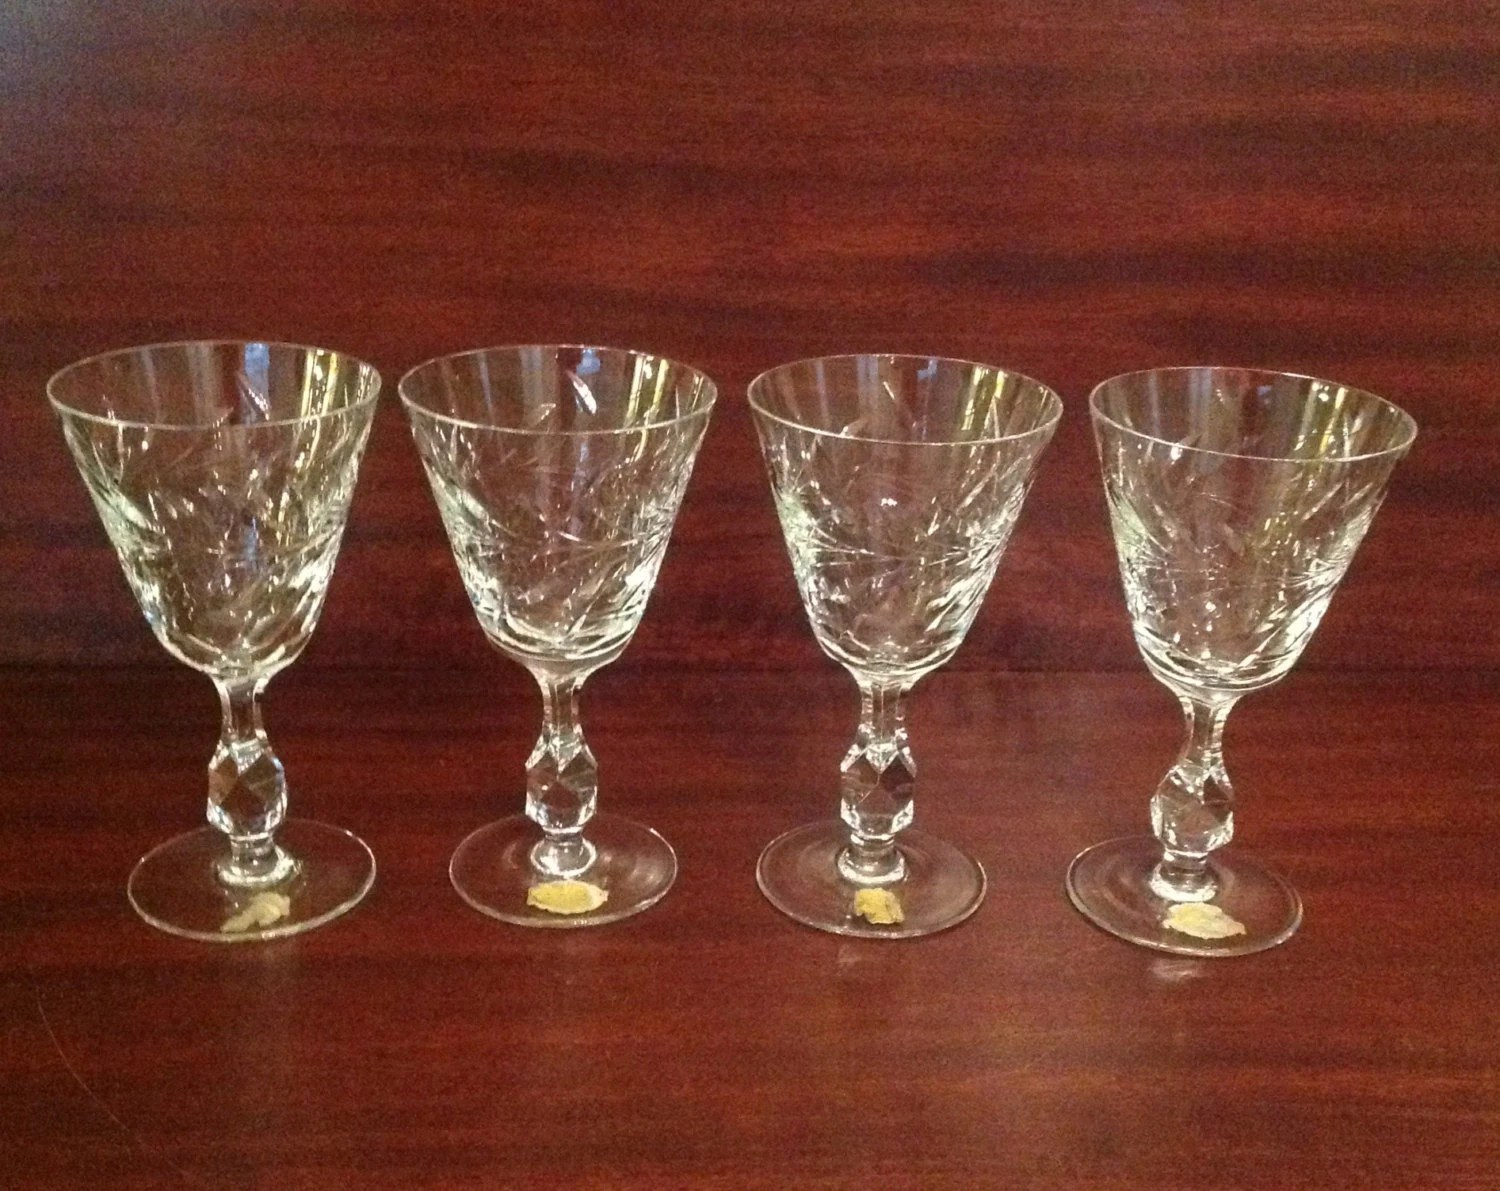 Crystal Stemware Wine Glasses Lead Crystal Cut Glass Wine Glasses Goblets Stemware Set Of 4